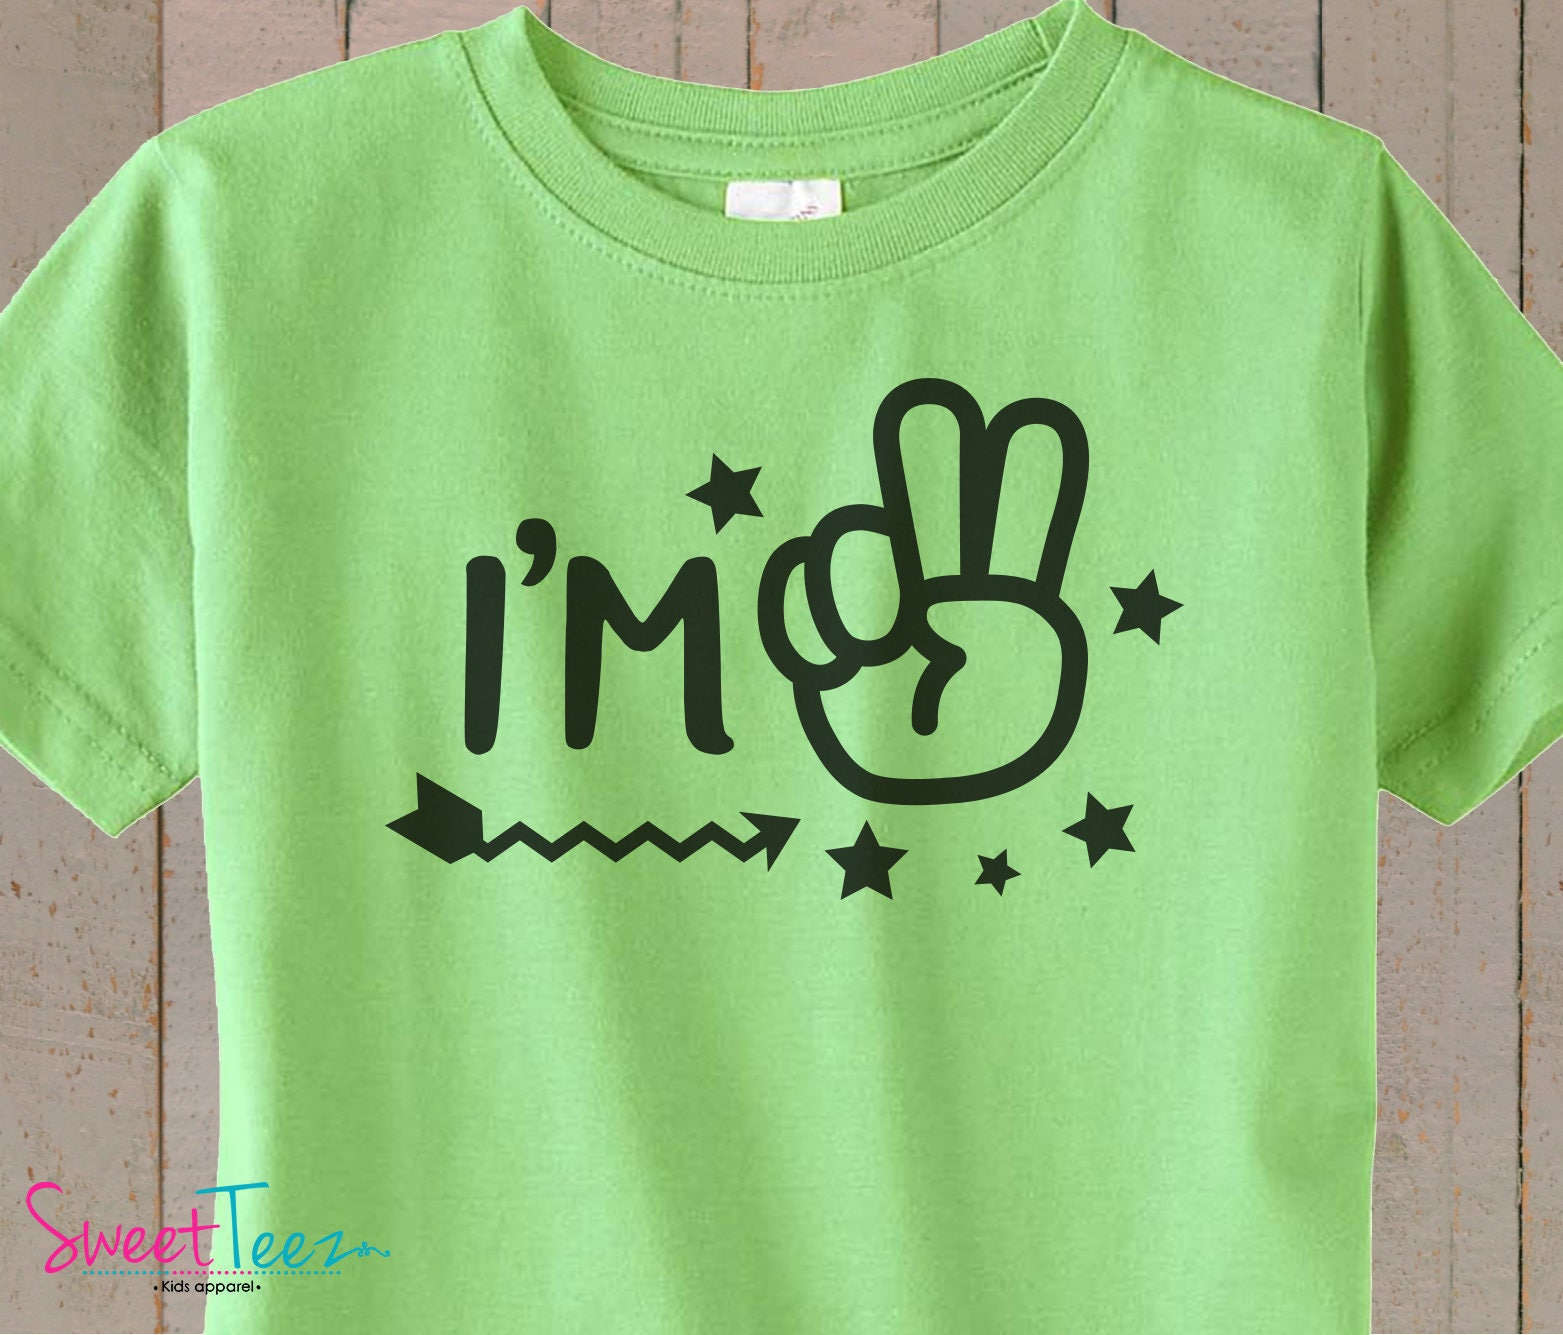 2nd Birthday Shirt Im 2 Second Boy Girl Green Blue Tshirt